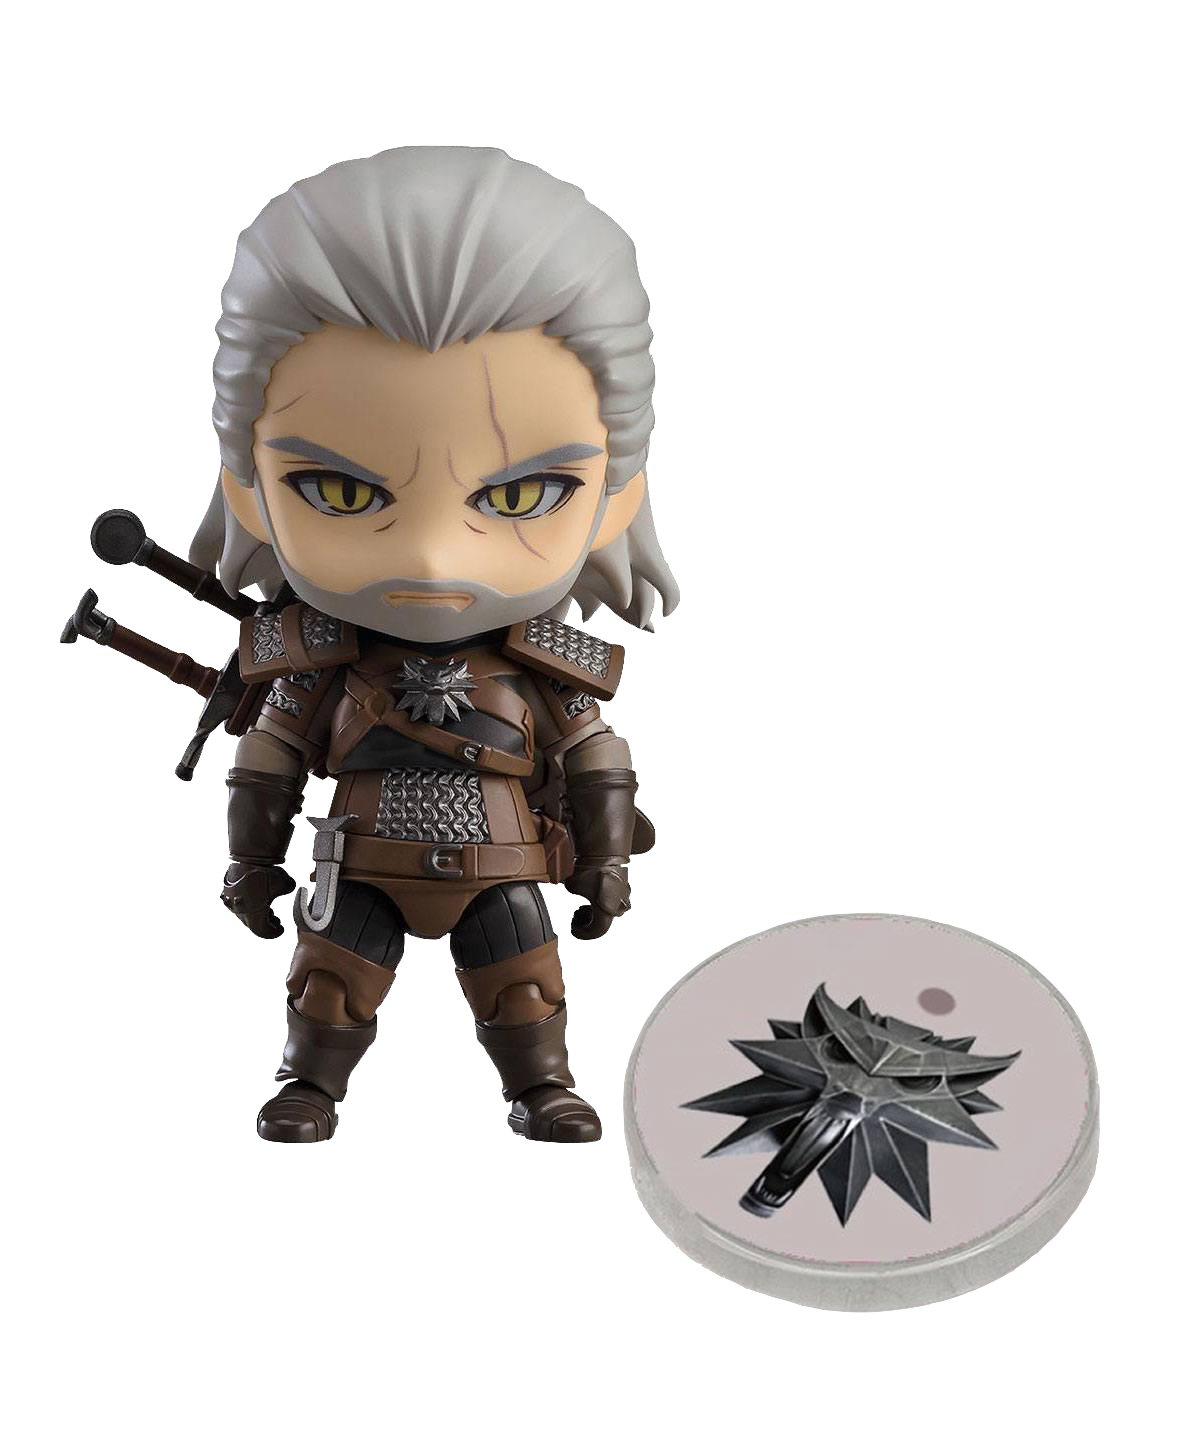 good-smile-company-the-witcher-geralt-of-rivia-nendoroid-exclusive-figure-toyslife